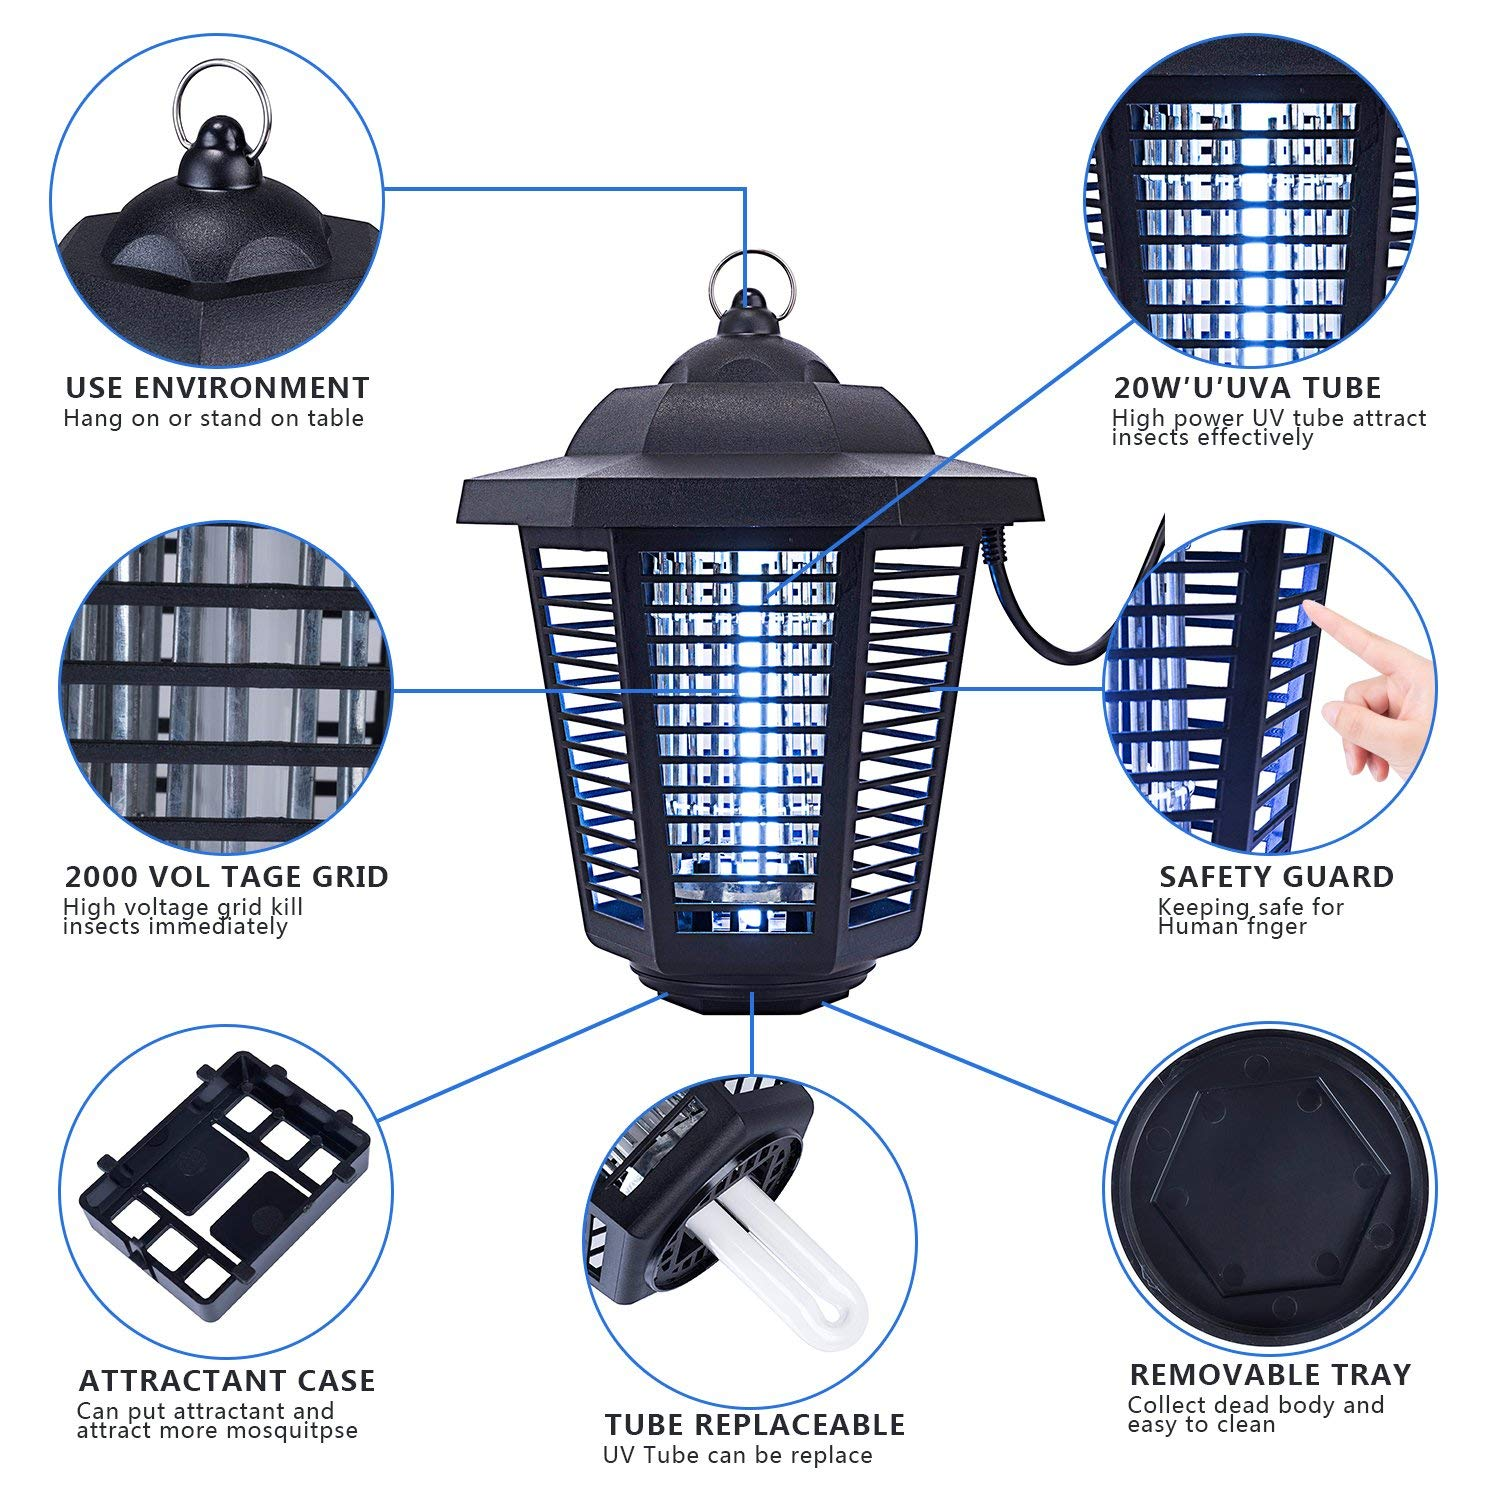 TBNEVG Powerful Electric Bug Zapper With UV Light Trap,Indoor Outdoor  Mosquito Fly Insect Catcher Killer,Pest Control Protects Up to 2 0 Acre For